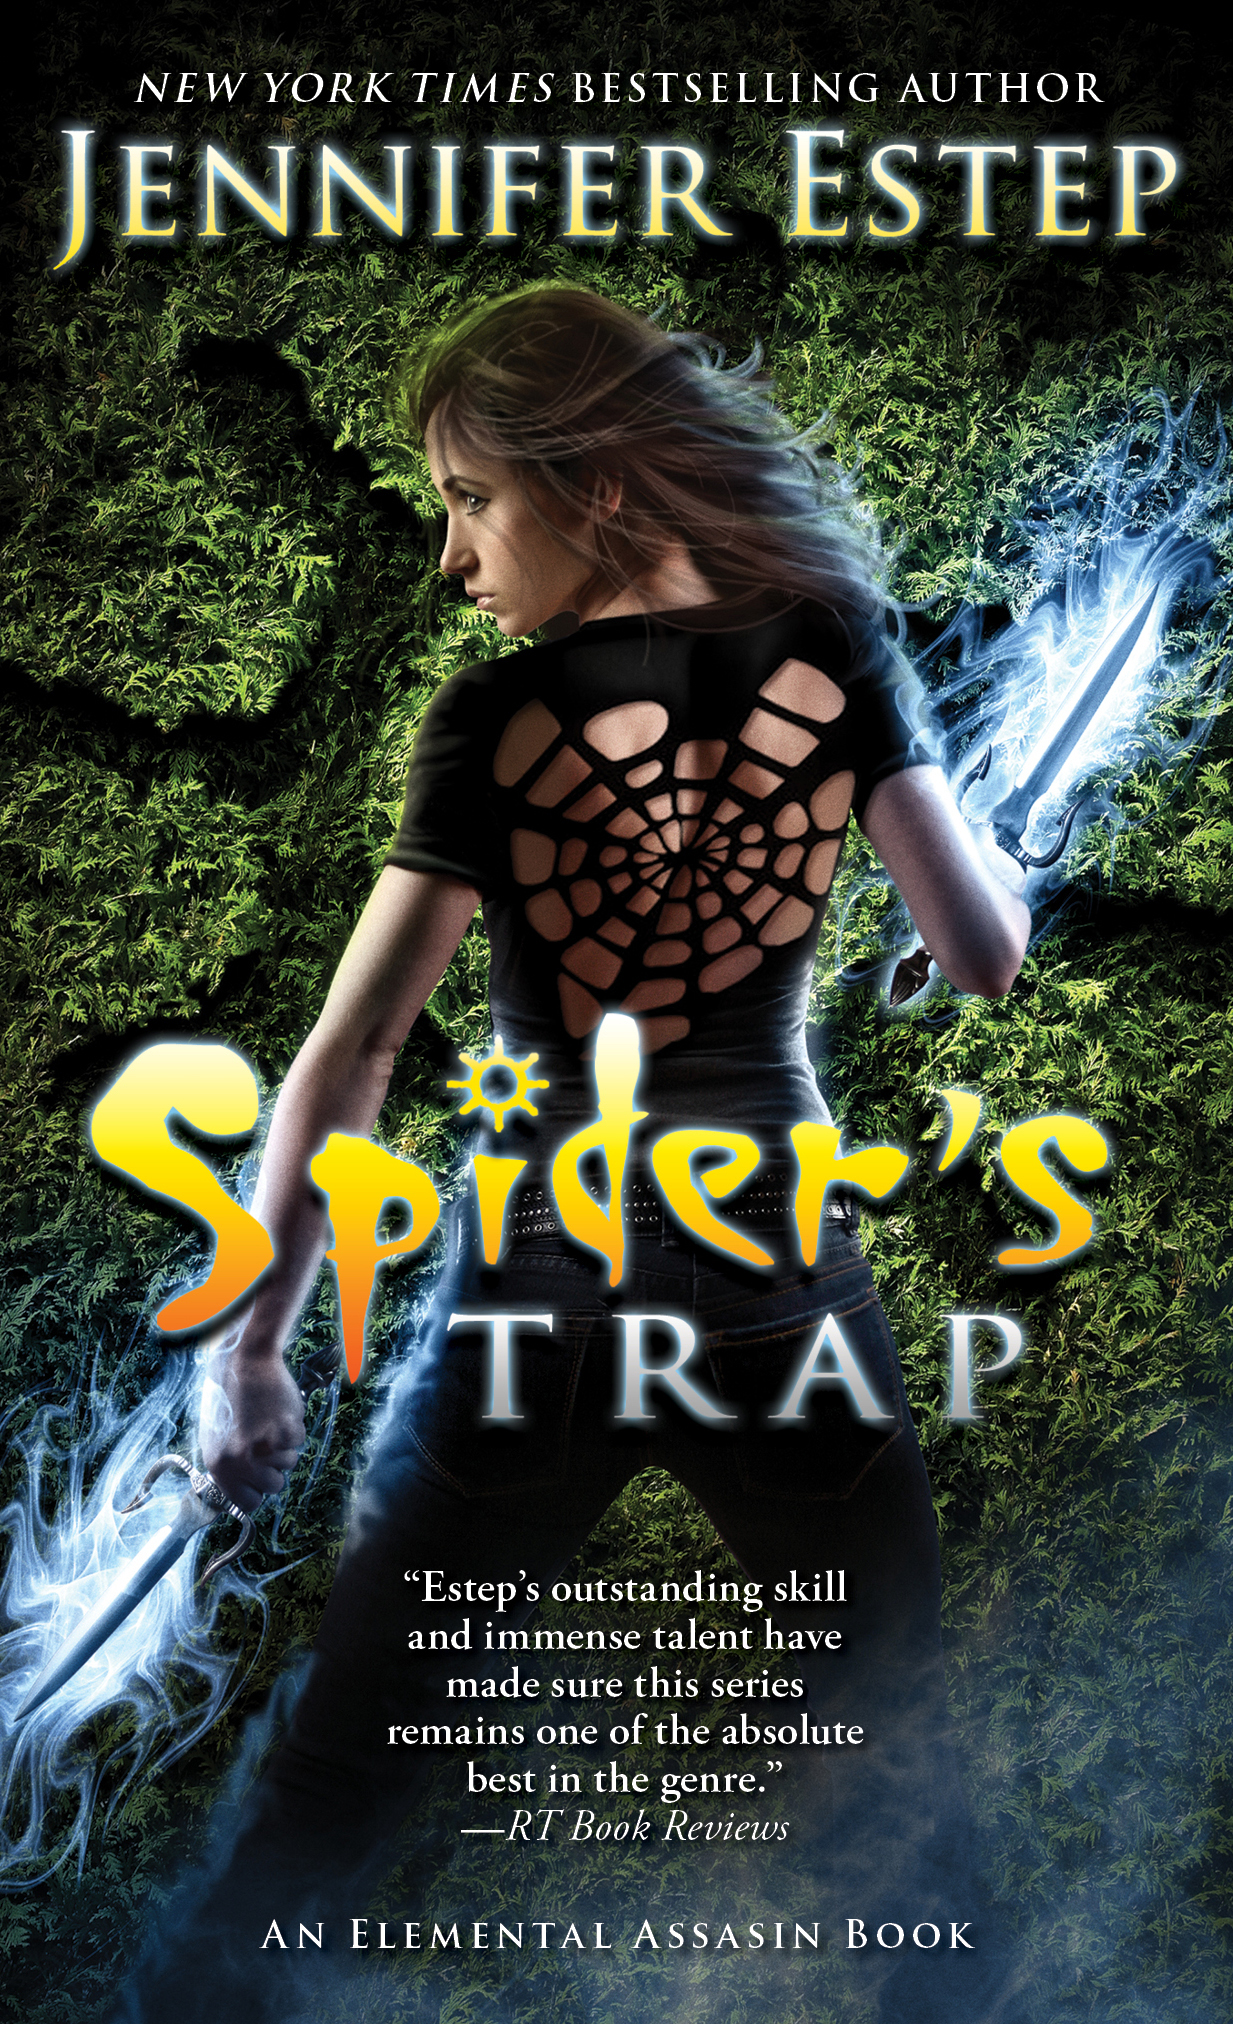 Blog Tour: Spider's Trap by Jennifer Estep